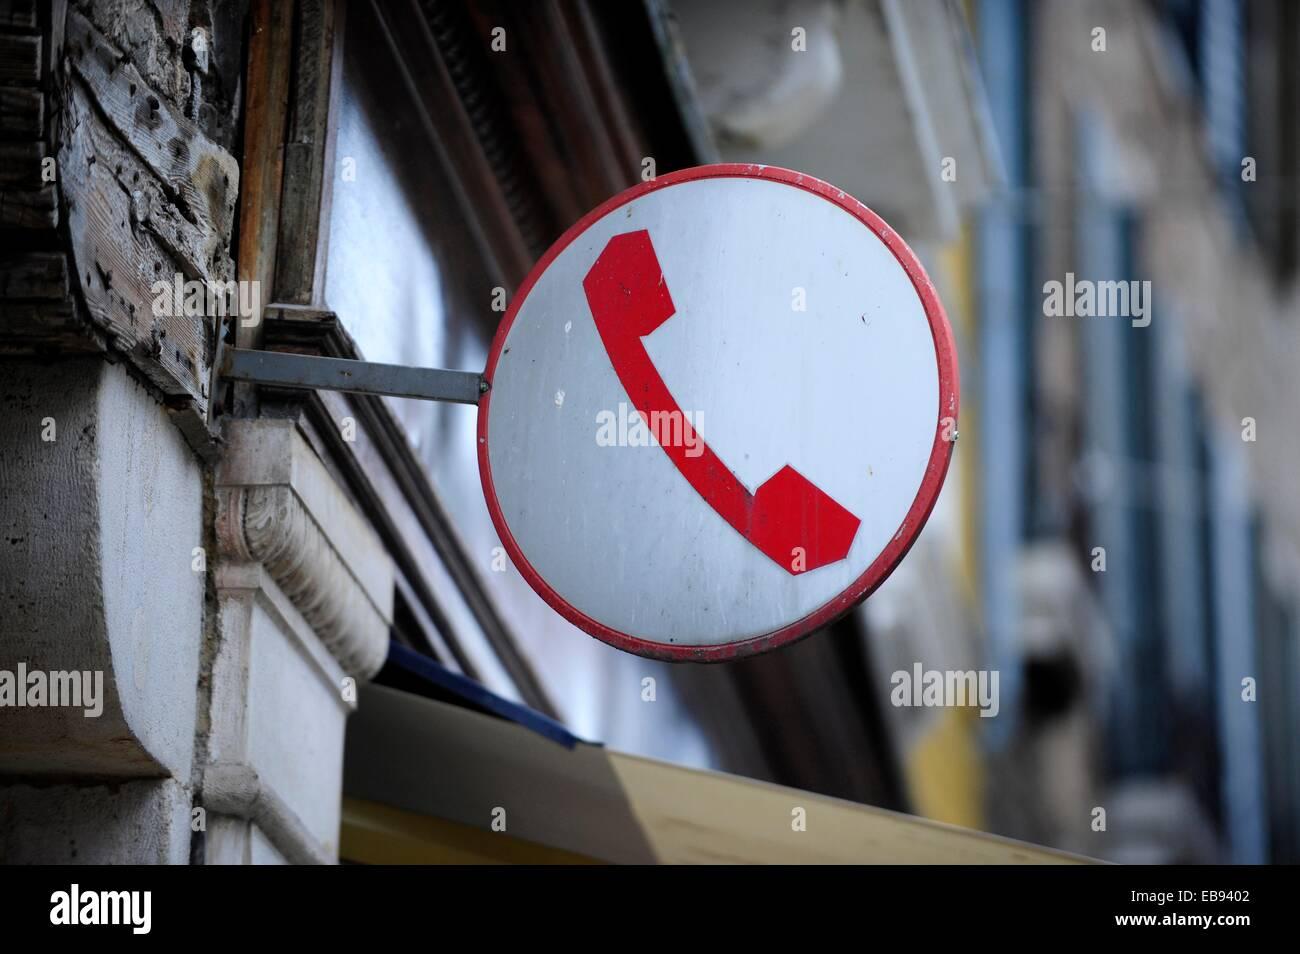 Public phone sign in Venice,Italy,Europe Stock Photo